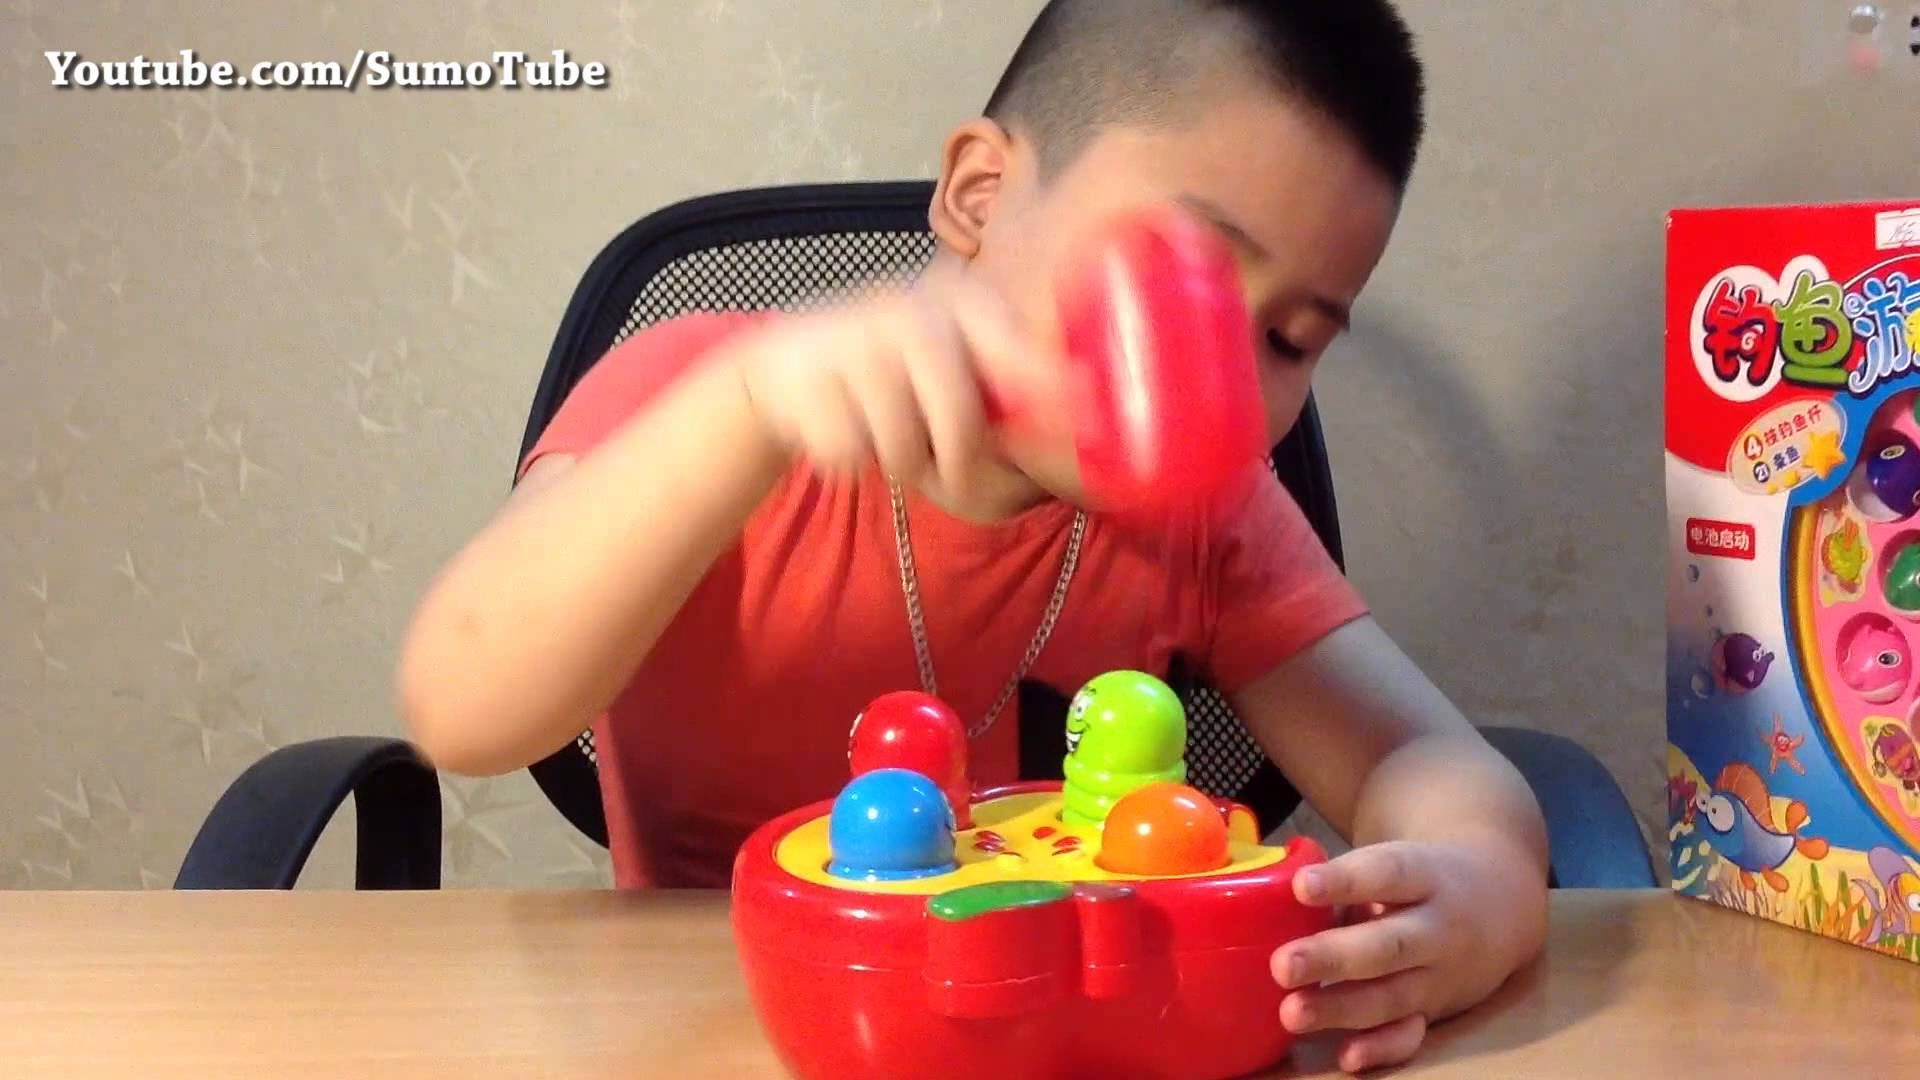 Mouse Trap Family Game Fun Toy Review Kids Toys Channel SumoTubeHD